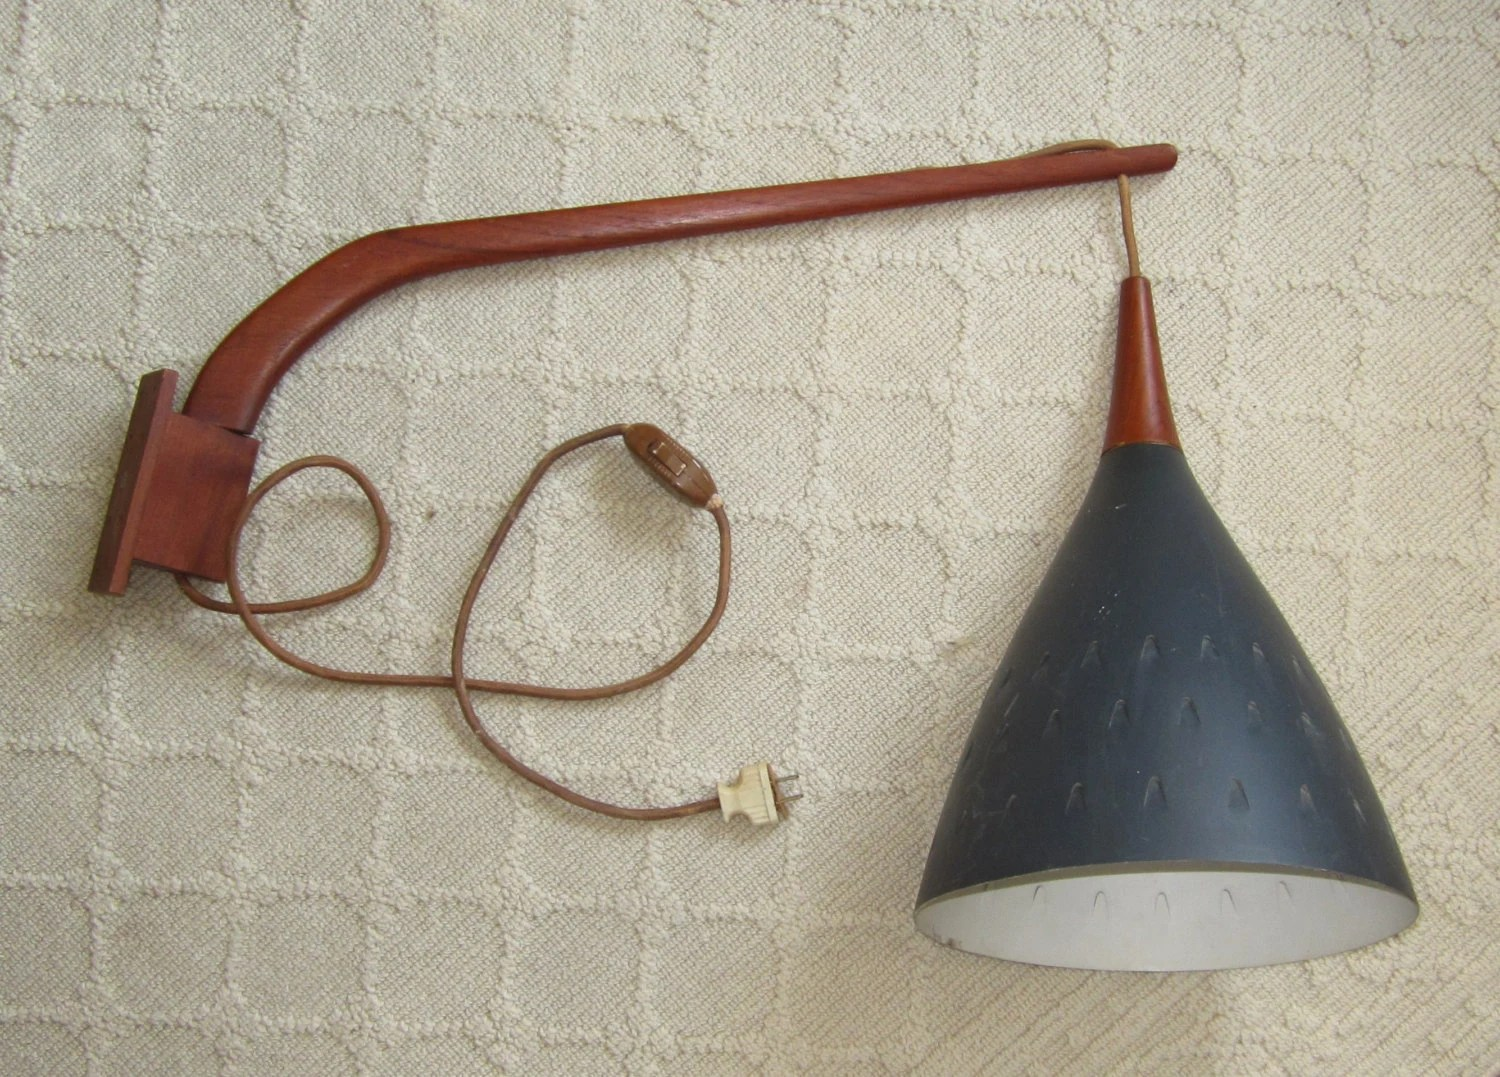 Mid Century Swing Arm Wall Lamp Mid Century Modern Danish Teak Swing Arm Wall Mount Pendant